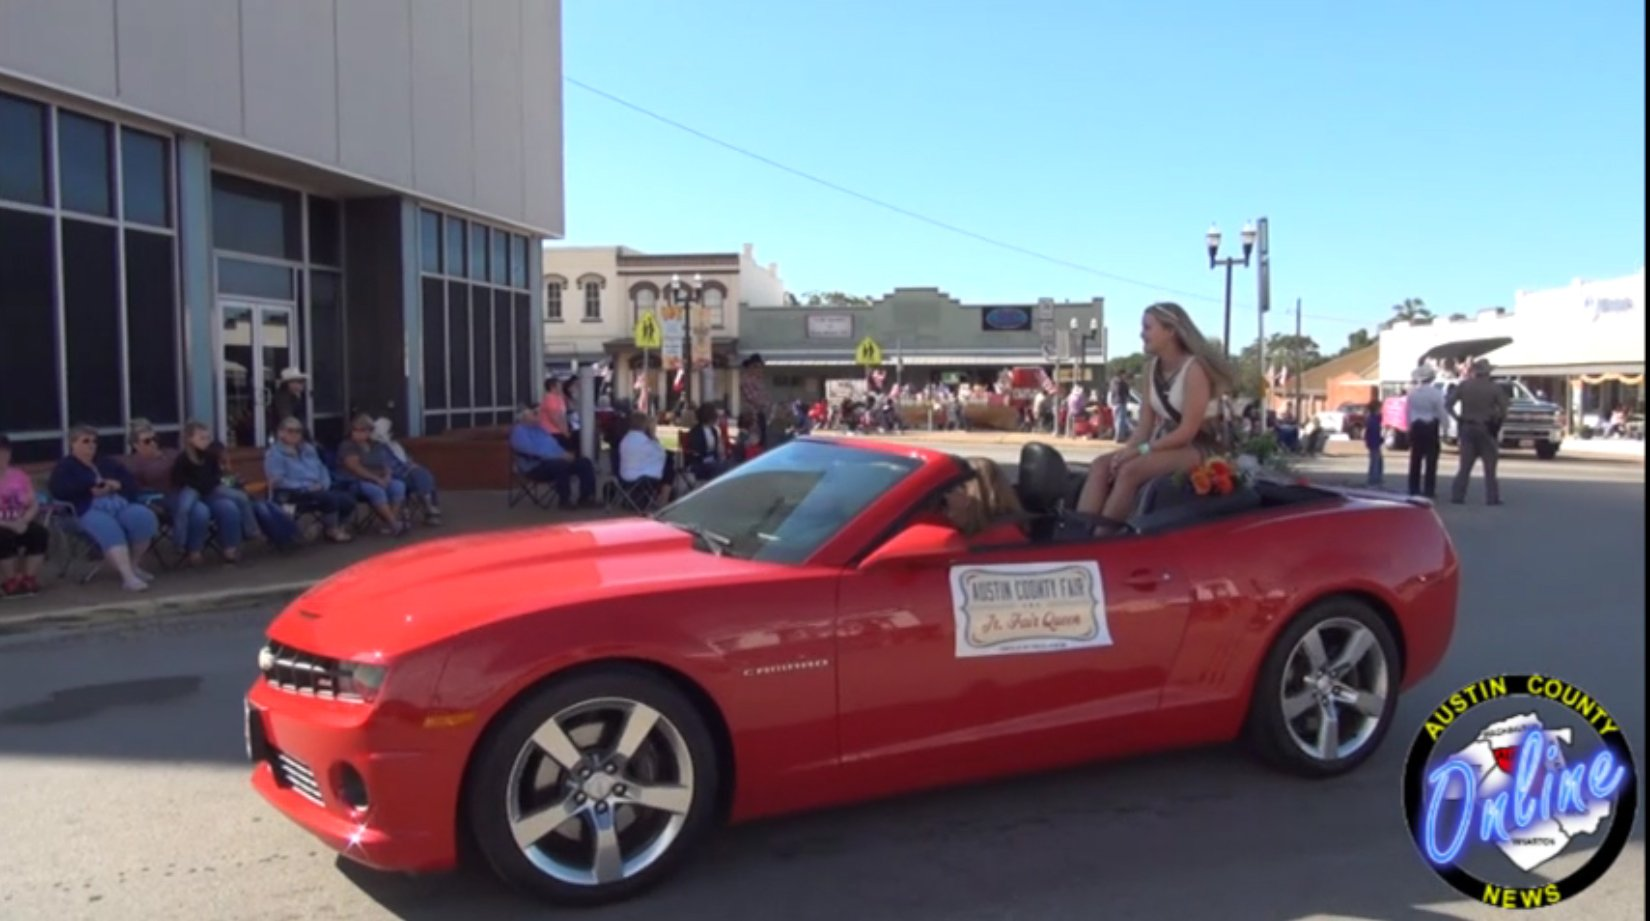 2018 Austin County Fair Parade [VIDEO]